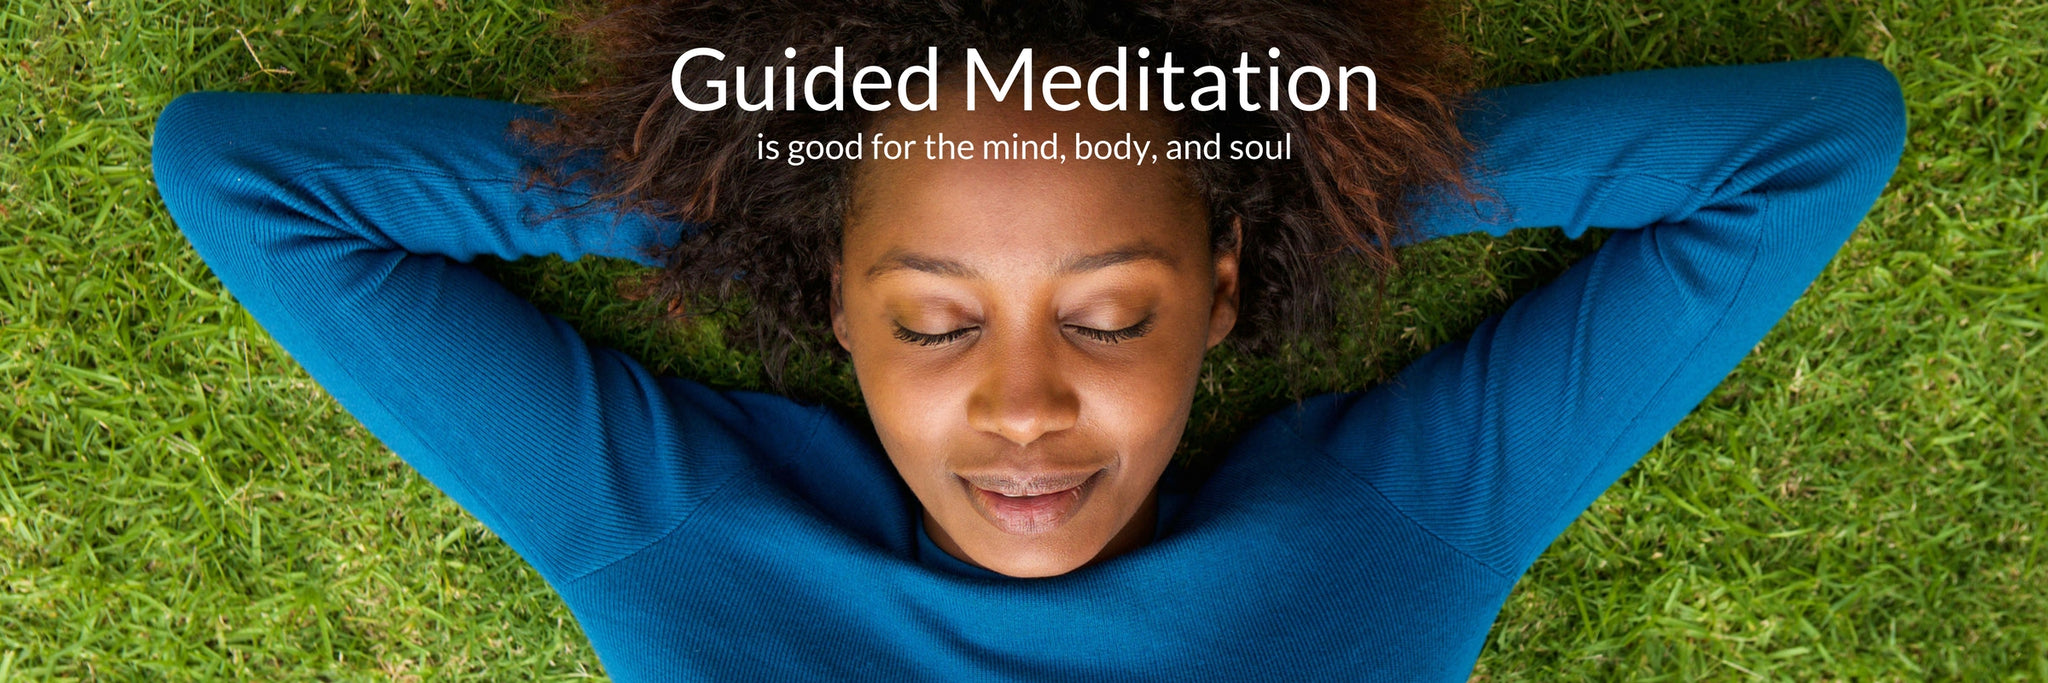 guided meditation anxiety stress relaxation goal setting intentions weightloss soulstarter.com